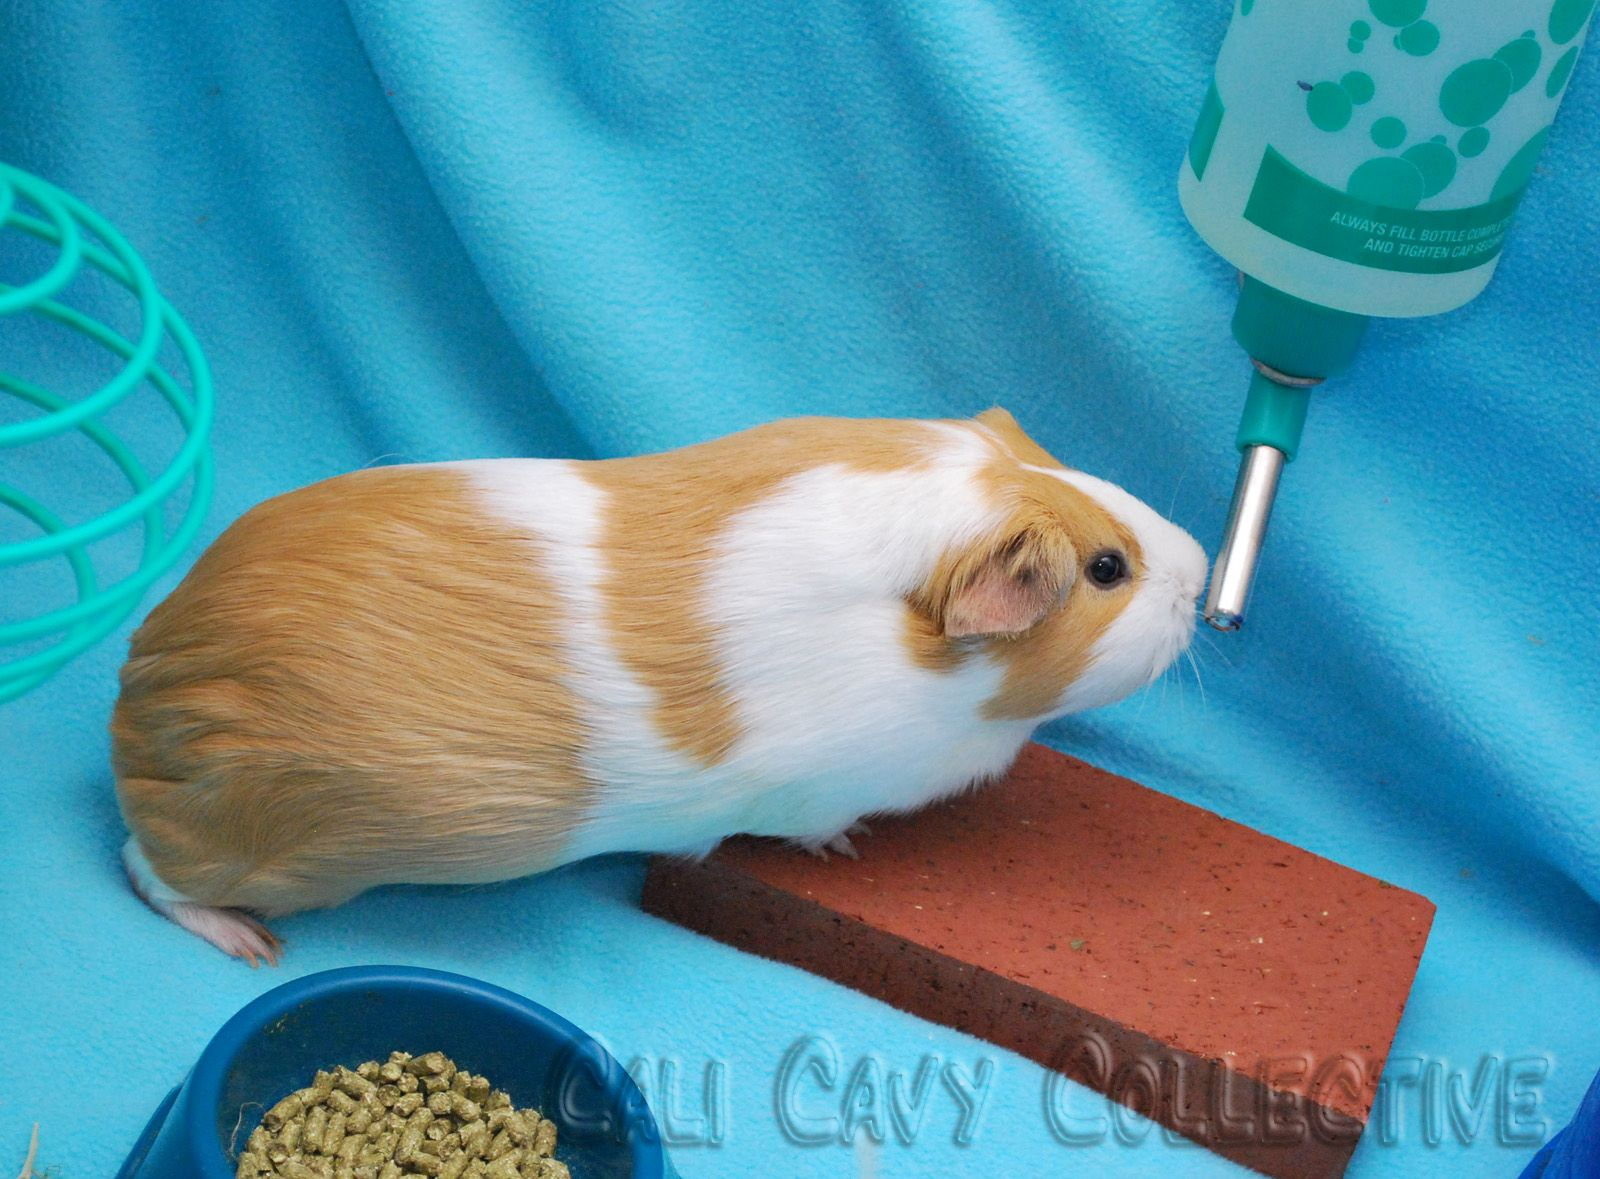 54 best guinea pig ideas images on pinterest guinea pigs pig put a brick underneath the water bottle to absorb drips and keep bedding dry and jeuxipadfo Gallery